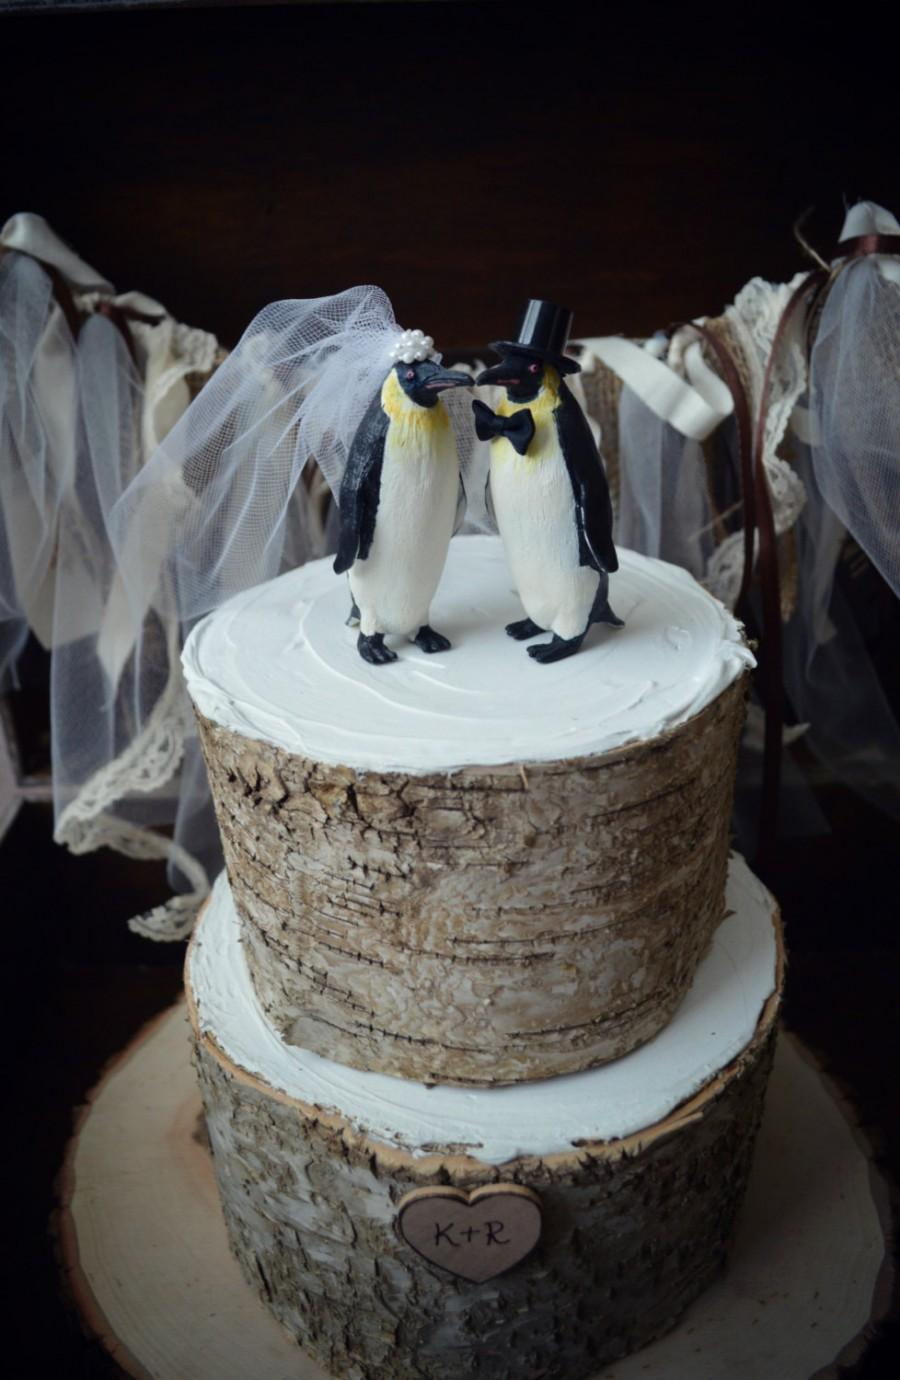 Decoración - Penguin-wedding-cake #2491846 - Weddbook